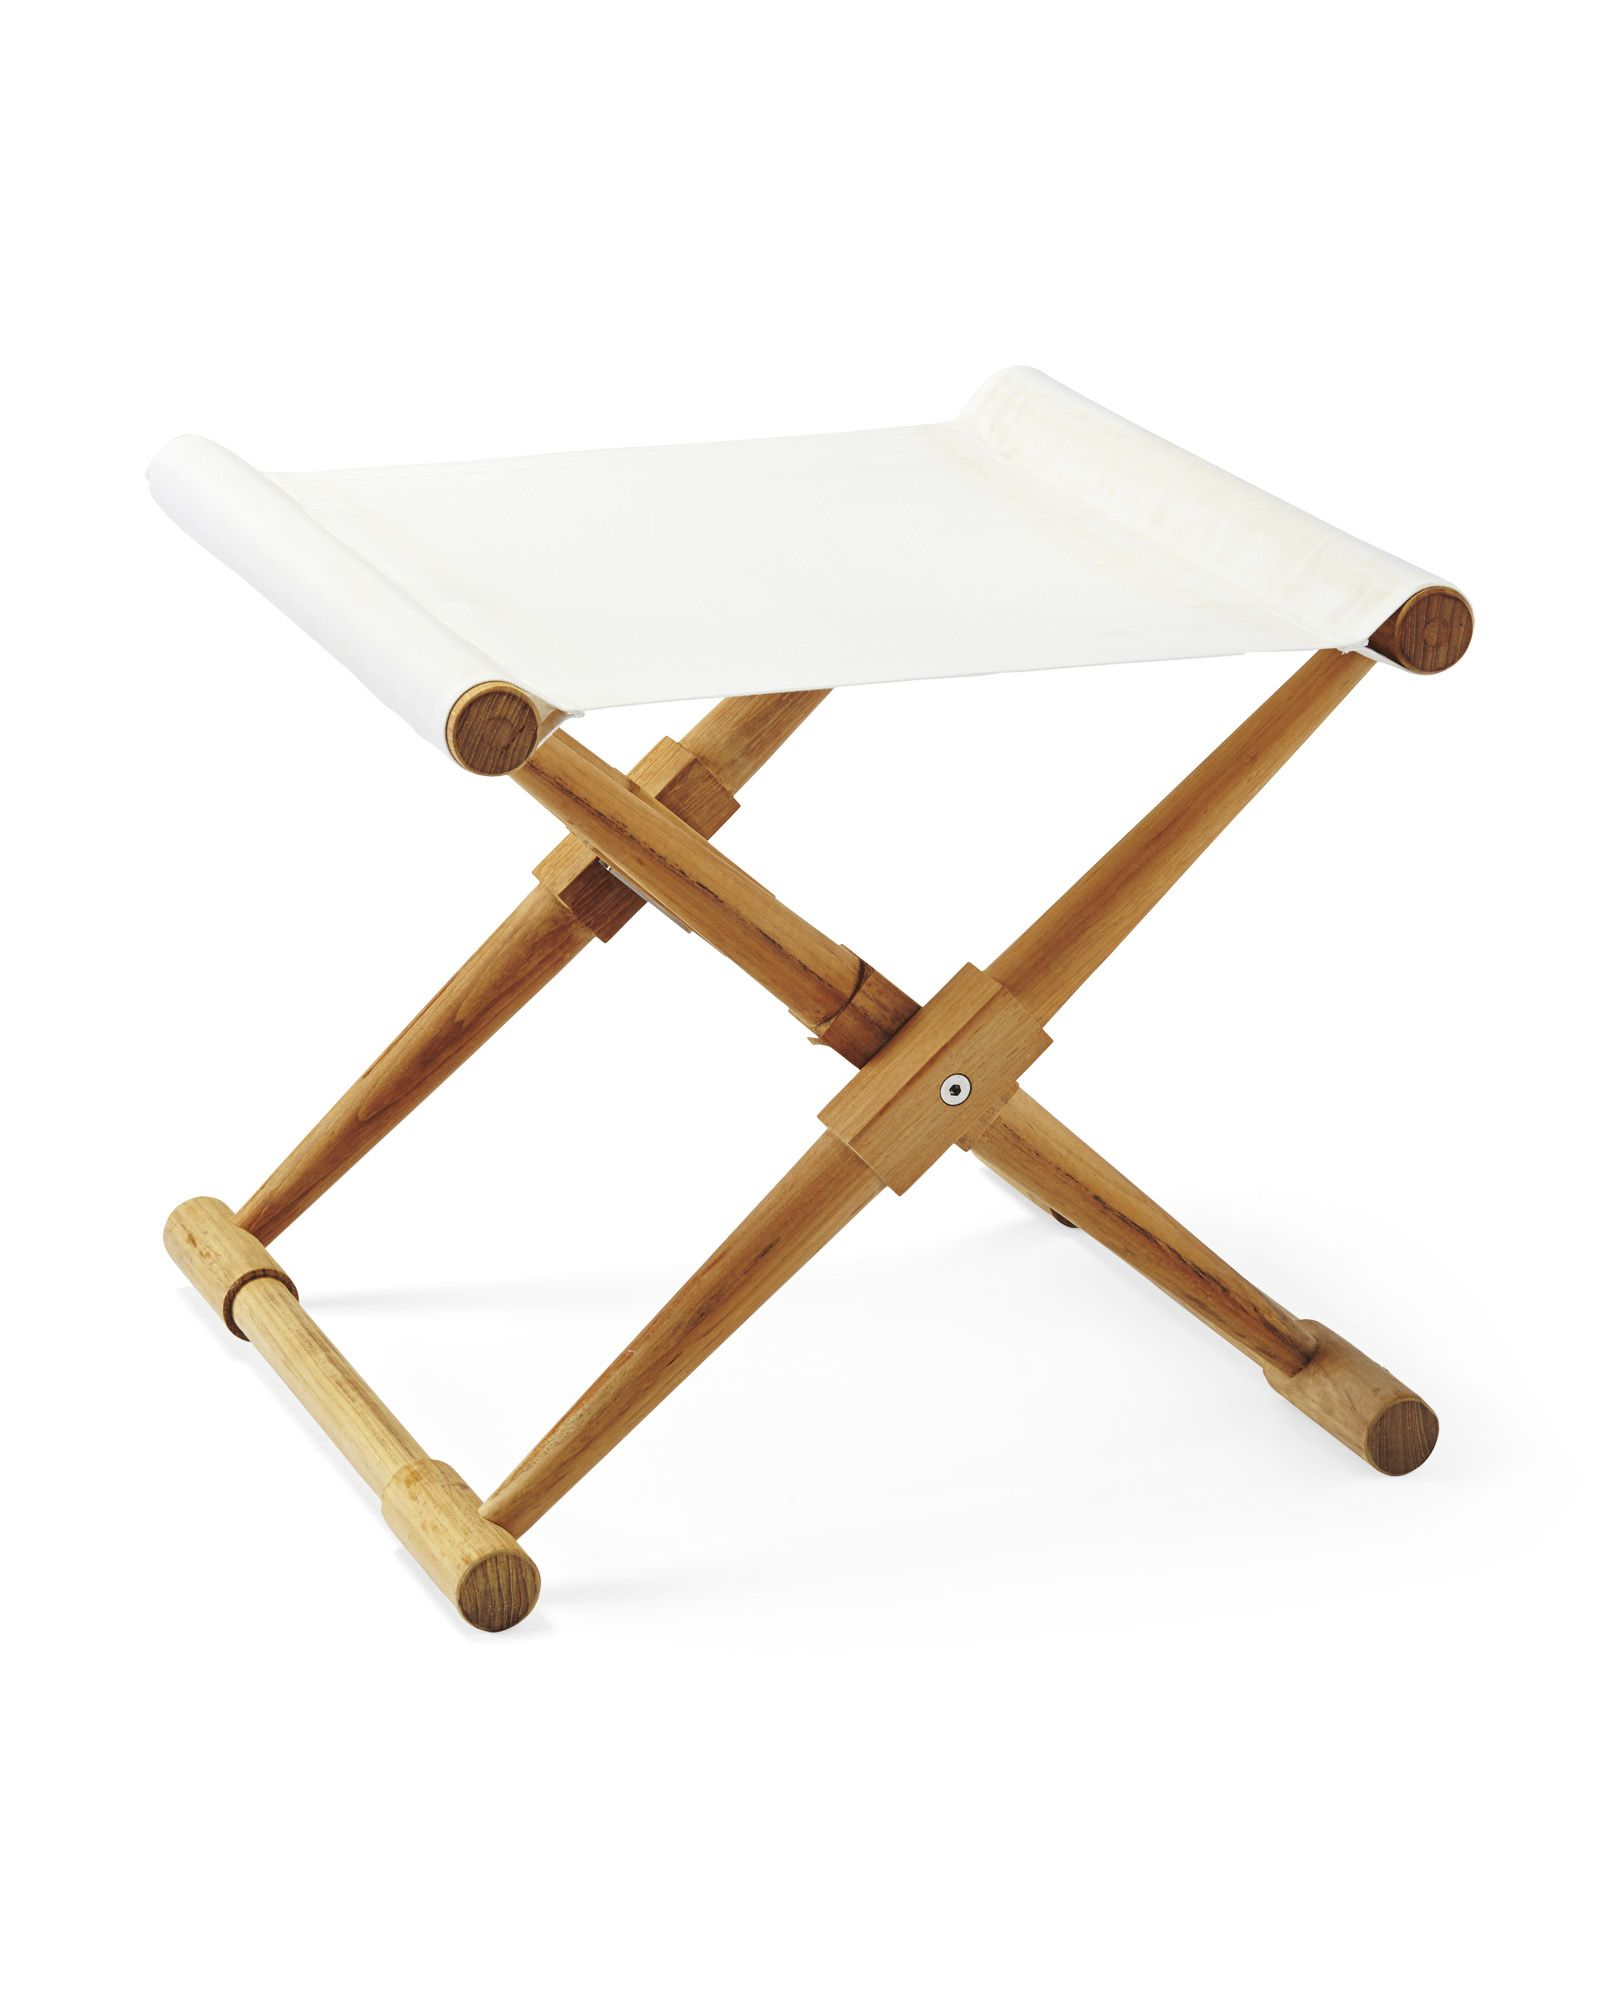 Camp stool serena lily site beautiful outdoor